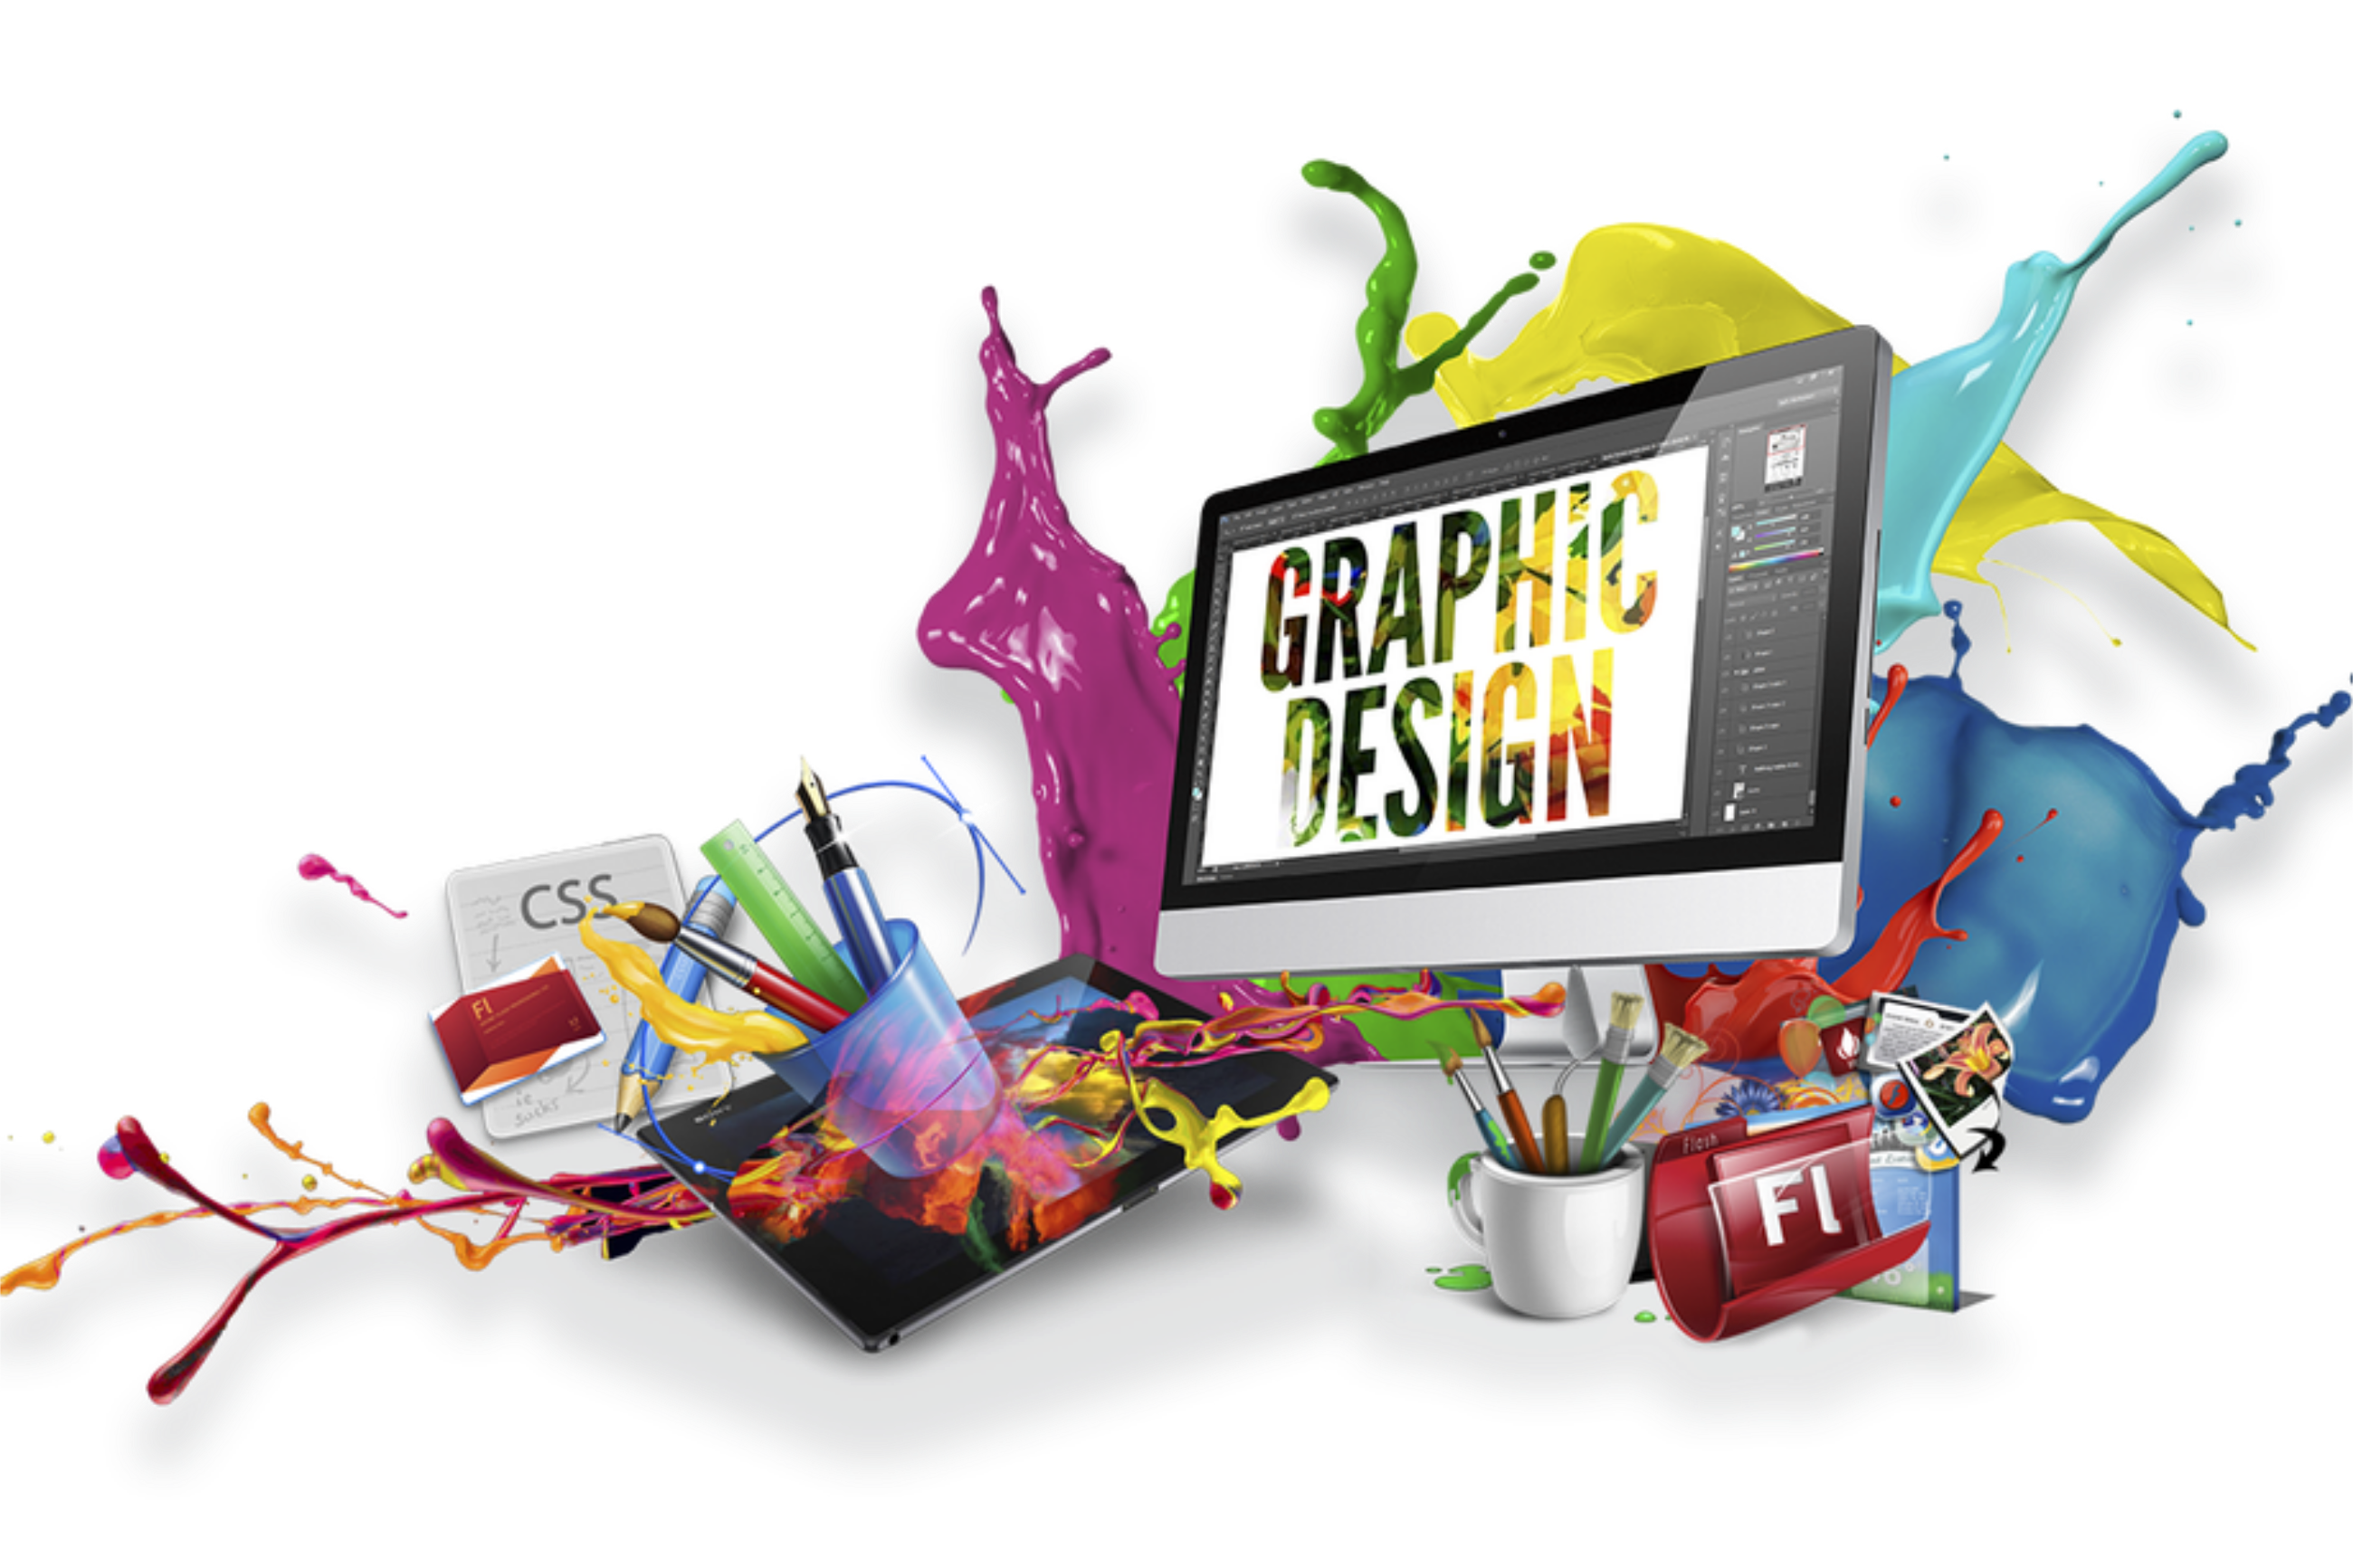 Graphik Design